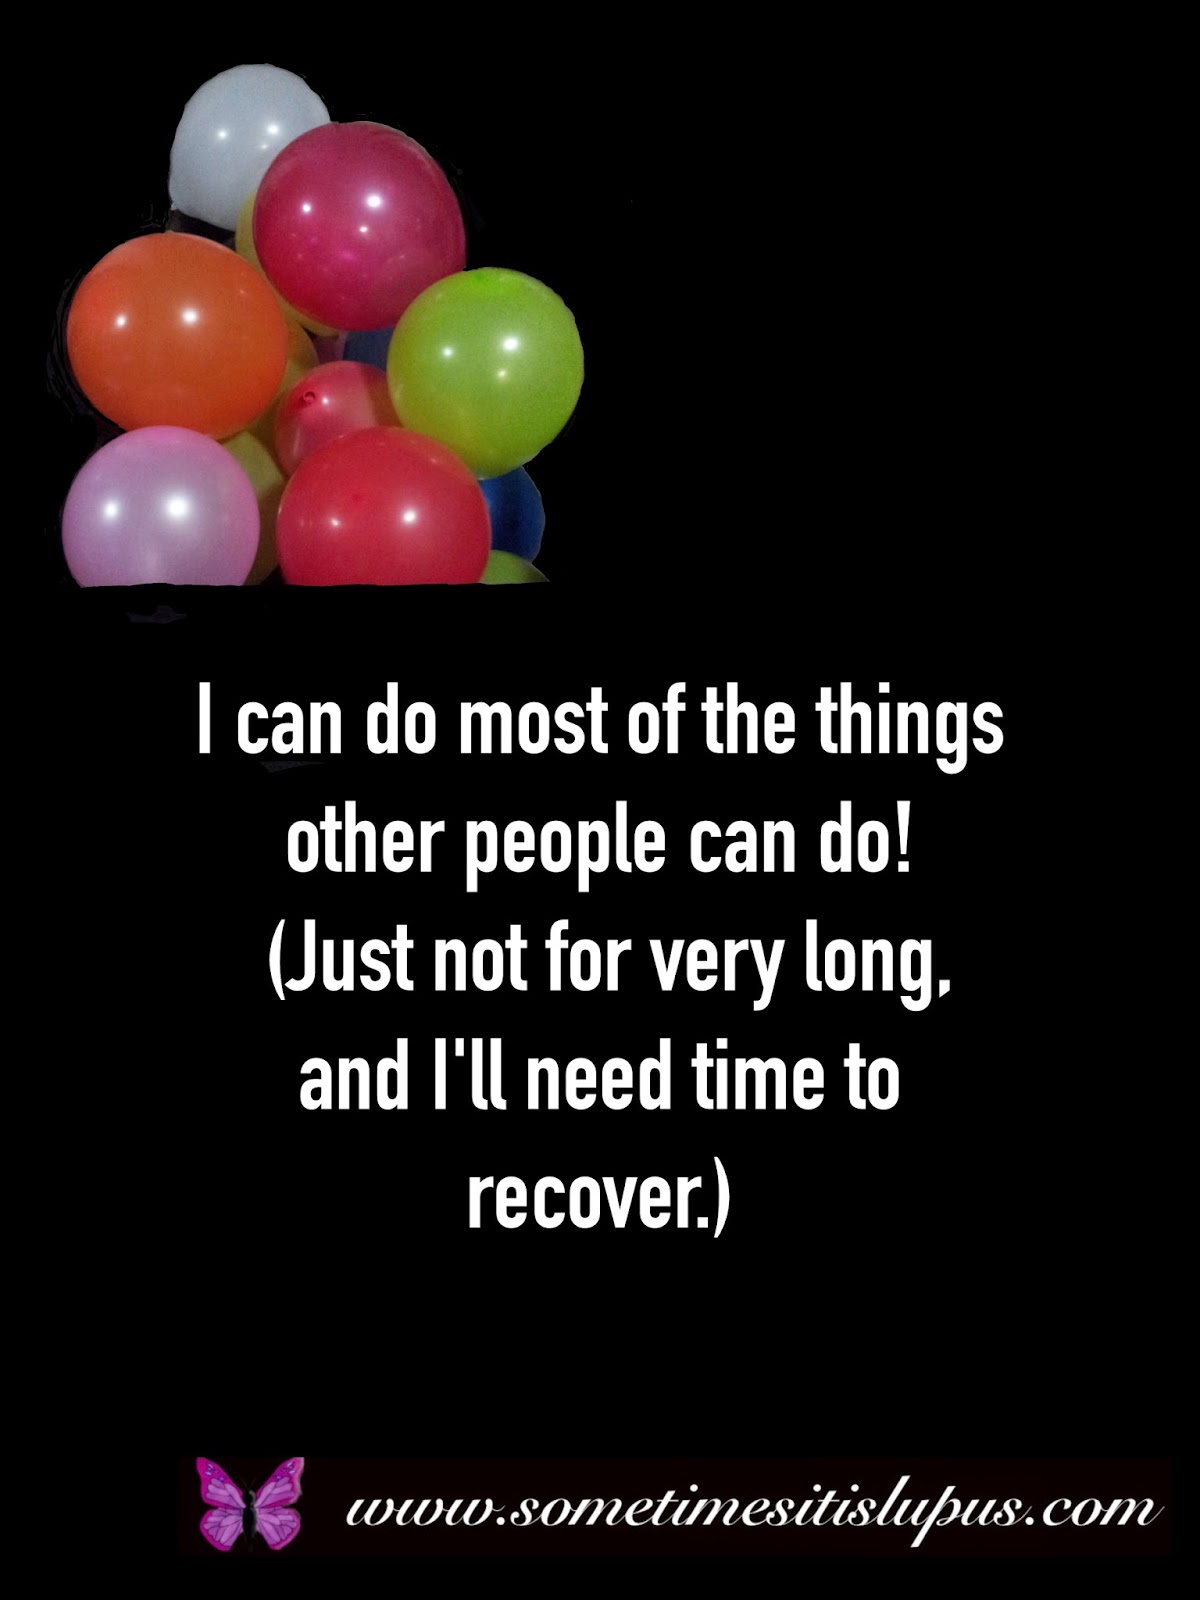 Image: Balloons. Text: I can do most of what other people can do. (Just not for long,and I need a long rest to recover.)